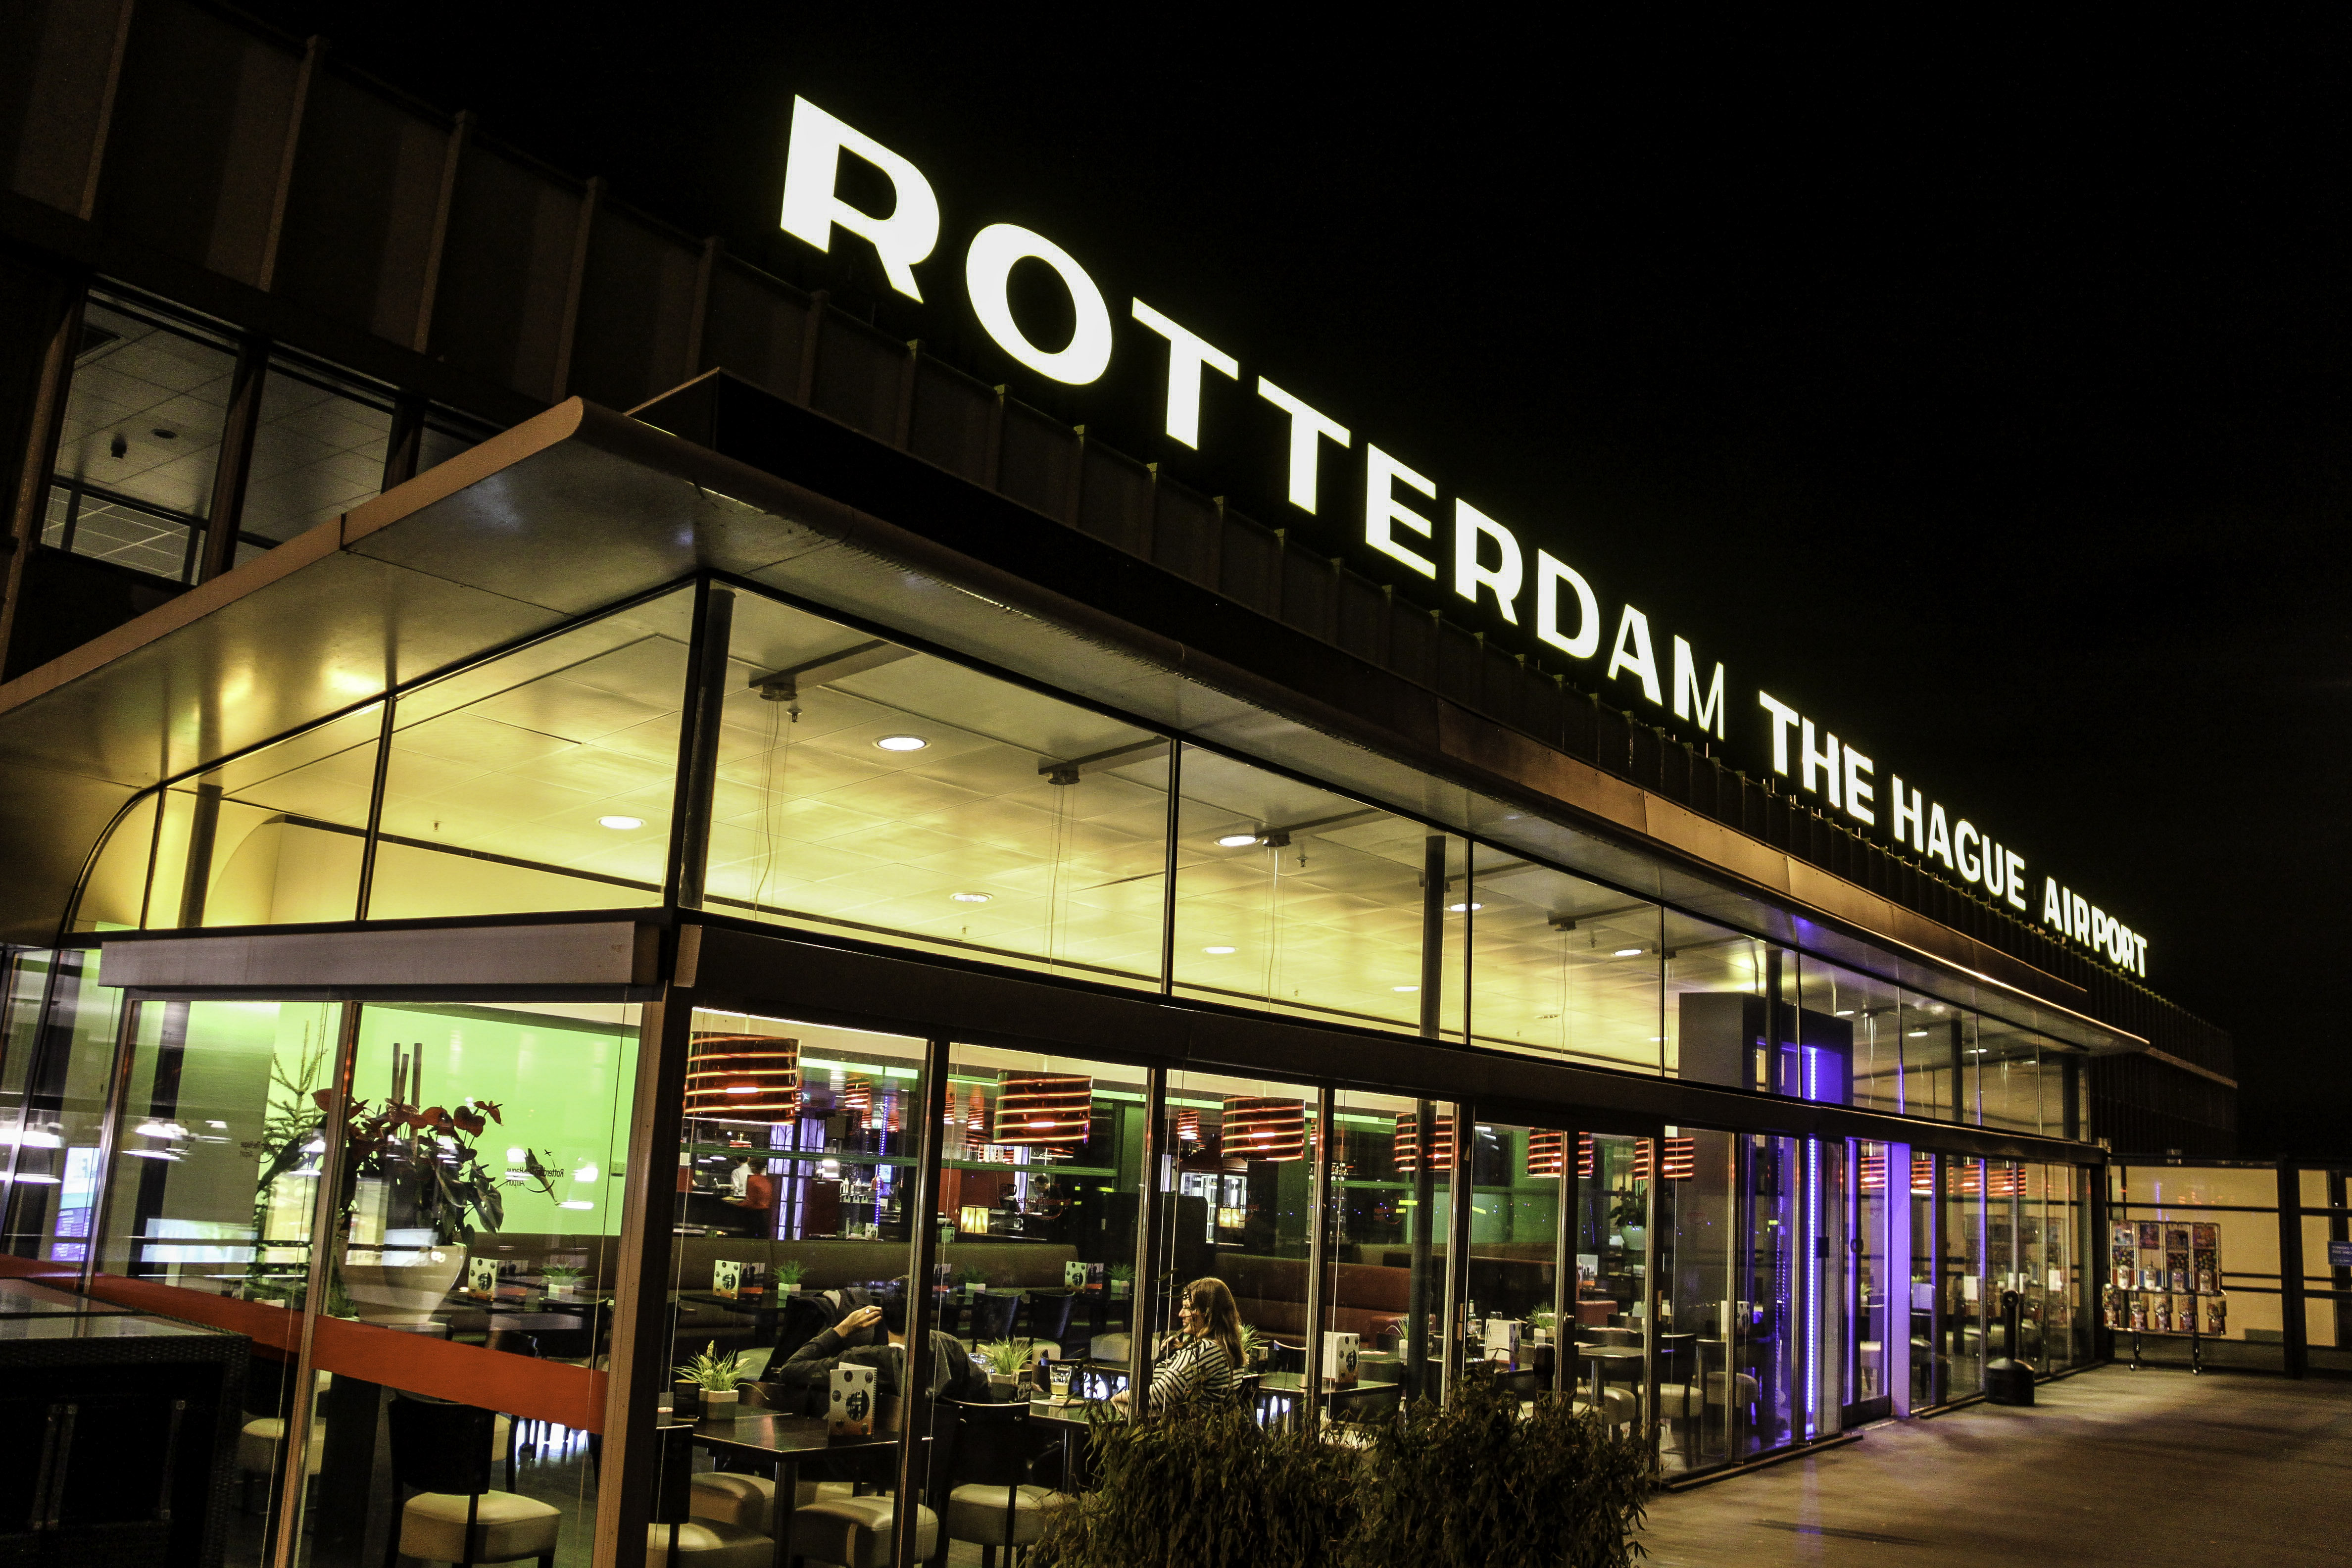 Rotterdam Airport in The Hague, Netherlands.